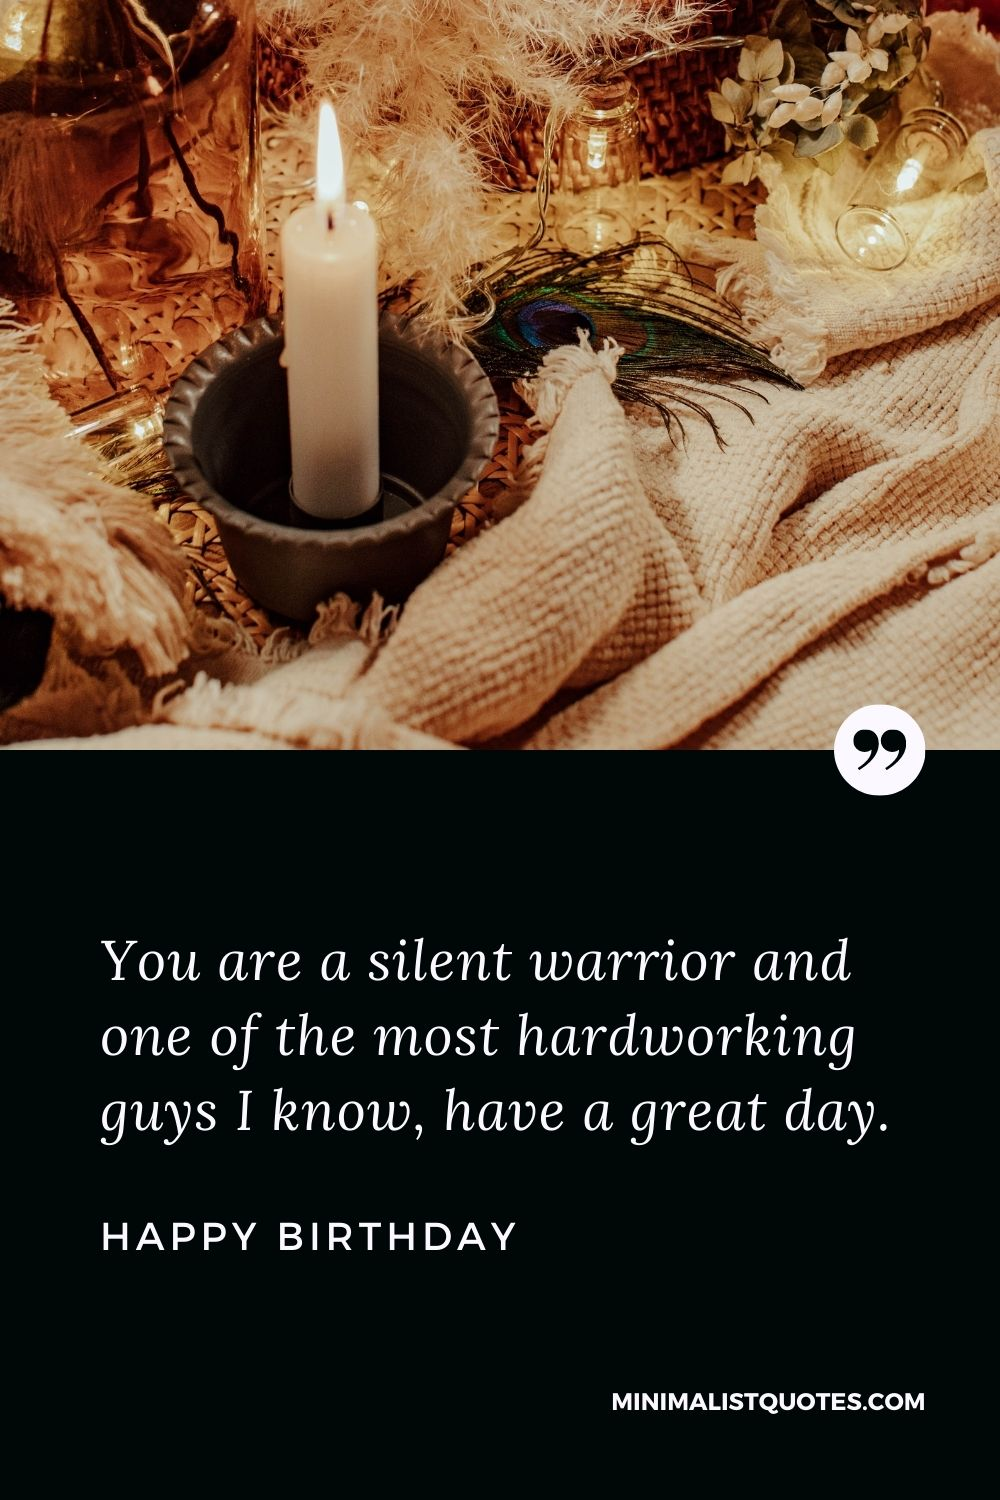 Birthday Wish & Message With HD Image: You are a silent warrior and one of the most hardworking guys I know, have a great day. Happy Birthday!